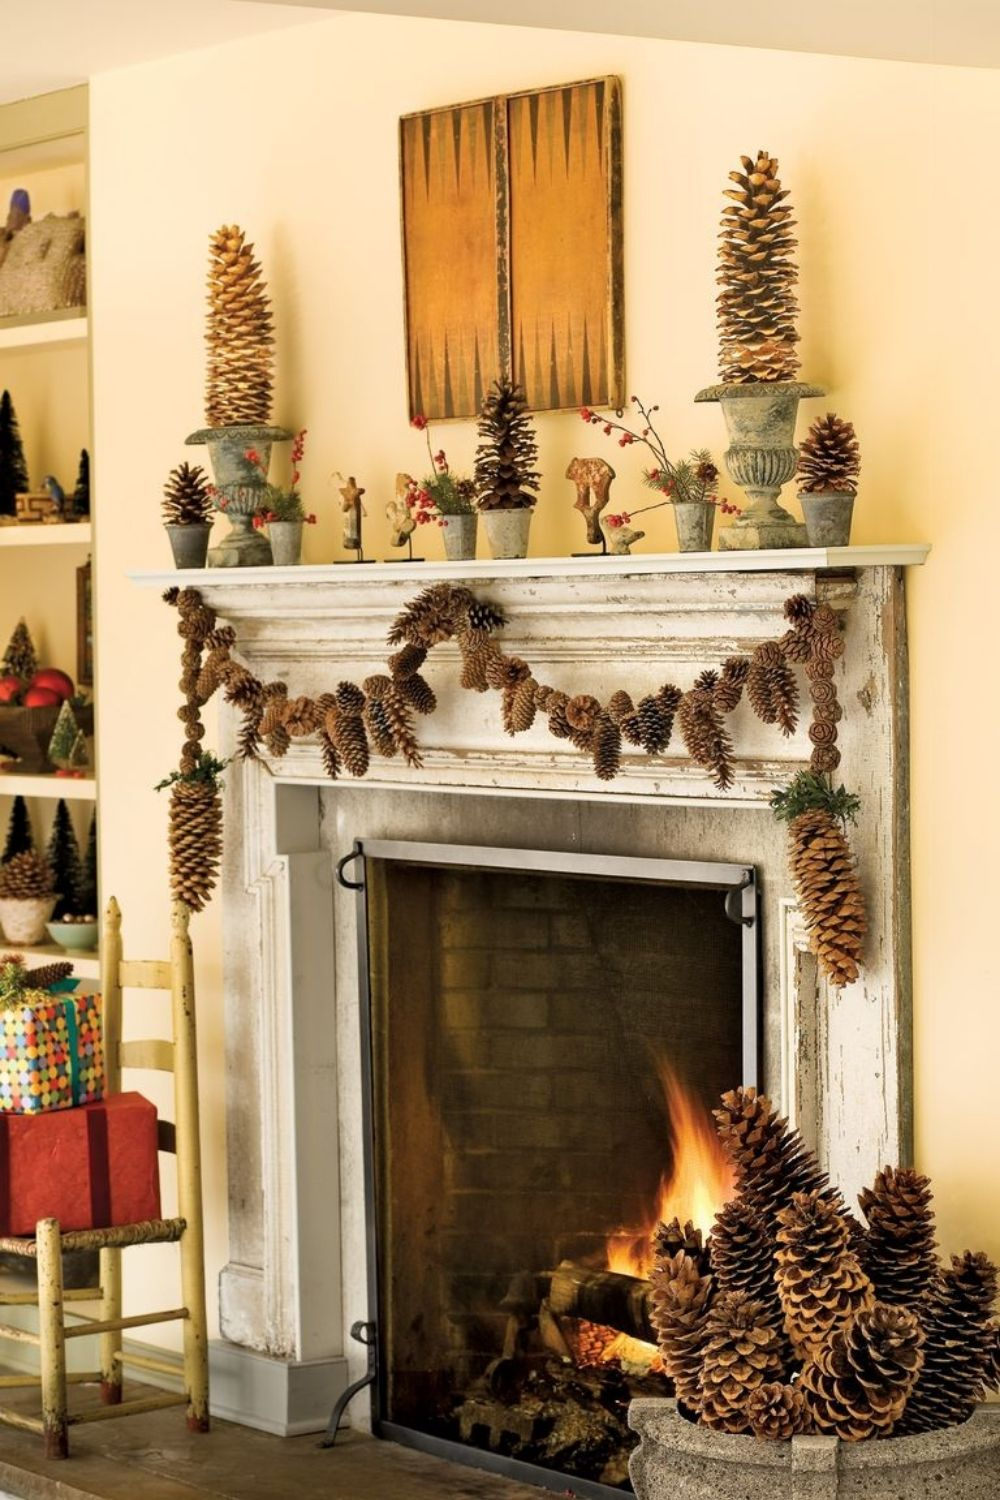 33 Great Christmas garlands ideas for 2021 to decorate your House